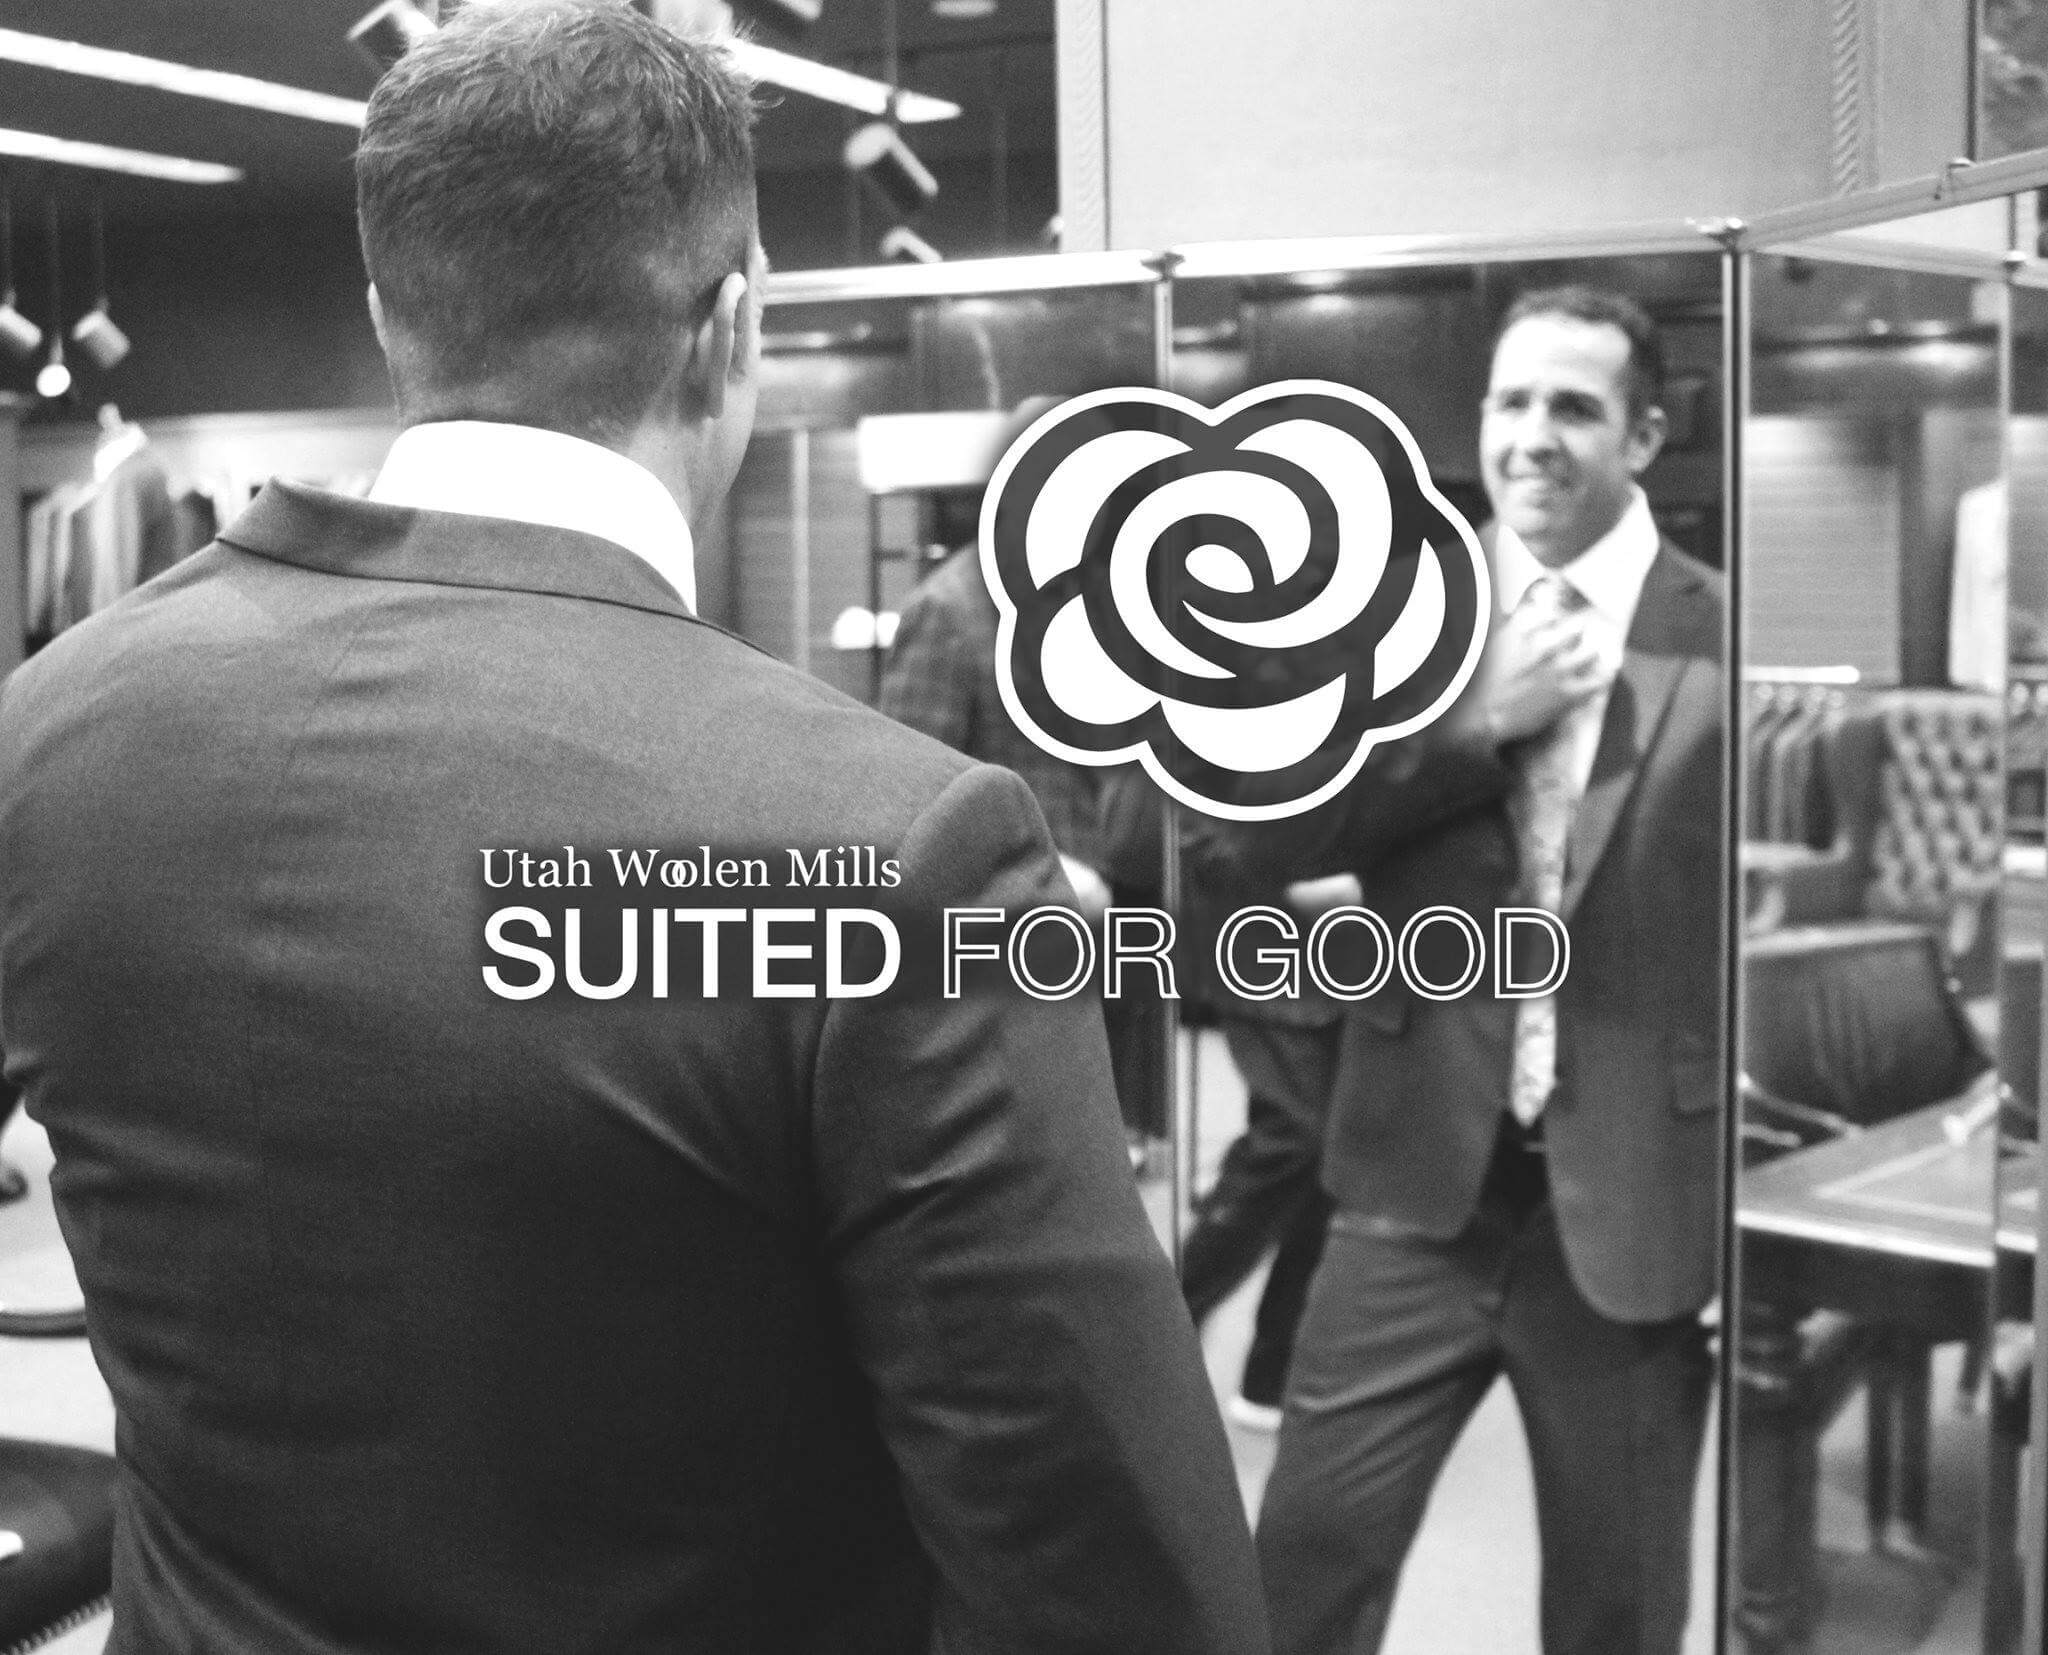 Suited For Good campaign